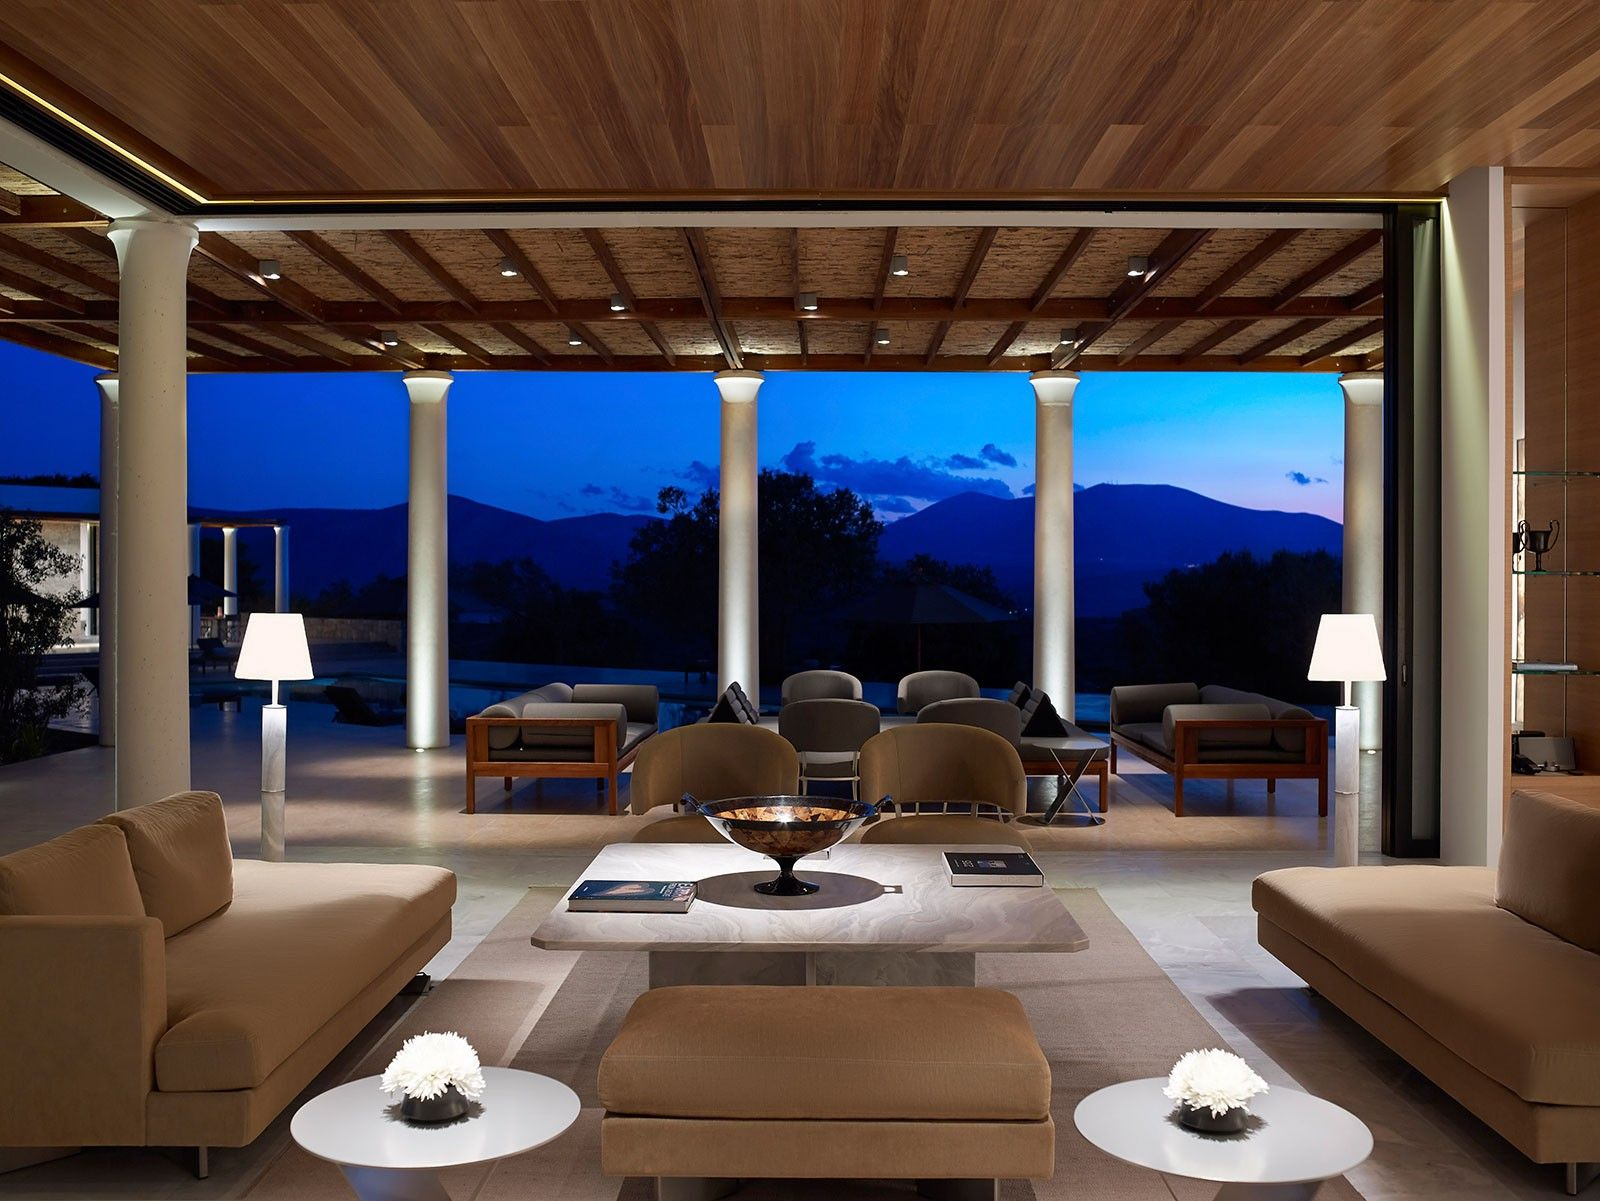 According to LuxuryHotels.com and an article published recently in BusinessWire, London, Europe's most expensive hotel is in fact located in Greece: The truly spectacular AMANZOE, which is situated on a gentle rise surrounded by undulating olive groves in the Peloponnese countryside, within easy rea...